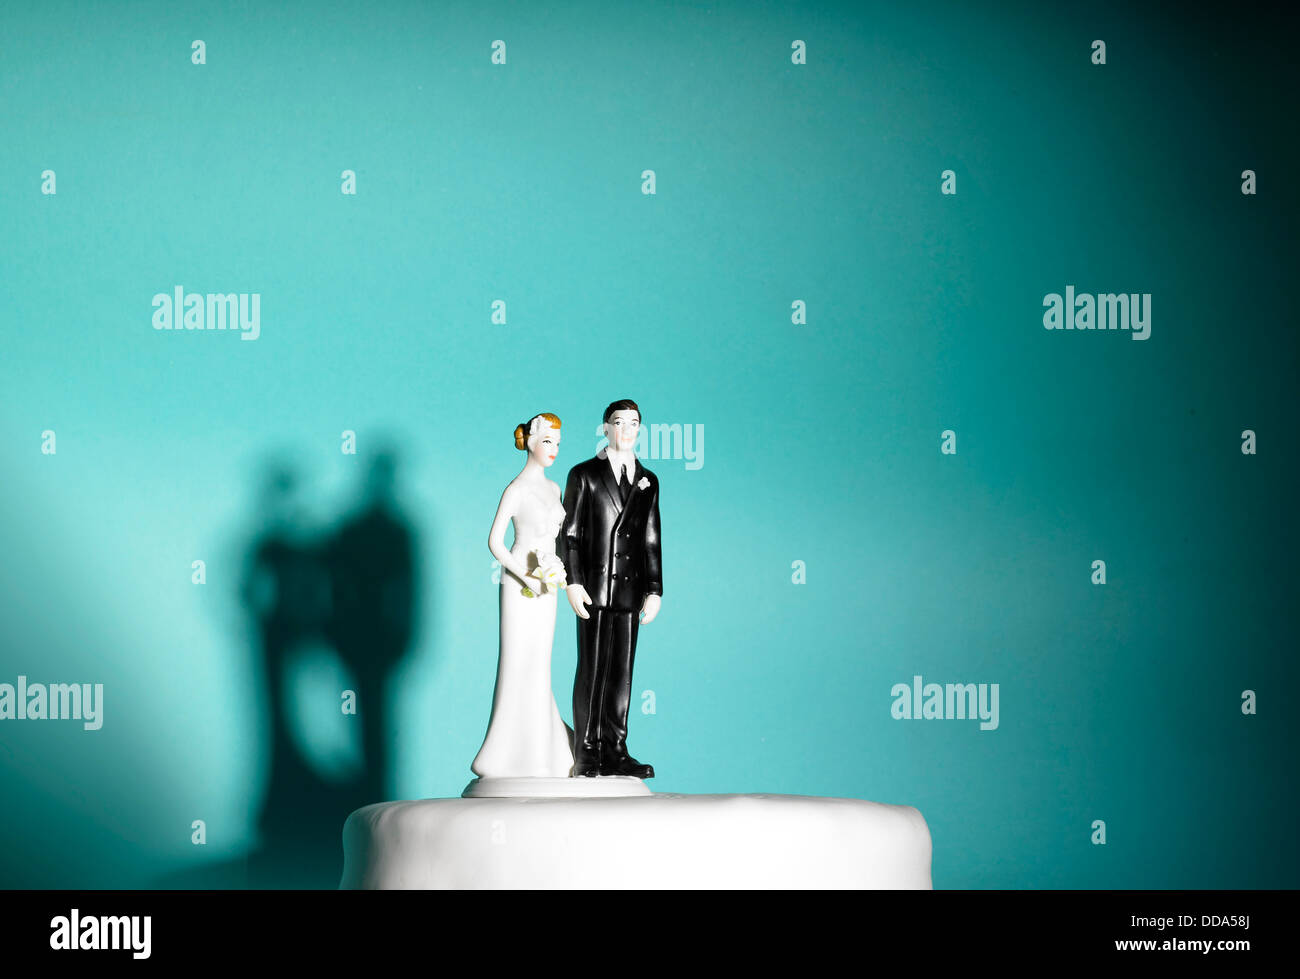 Bride and groom figures on a wedding cake on blue background - Stock Image